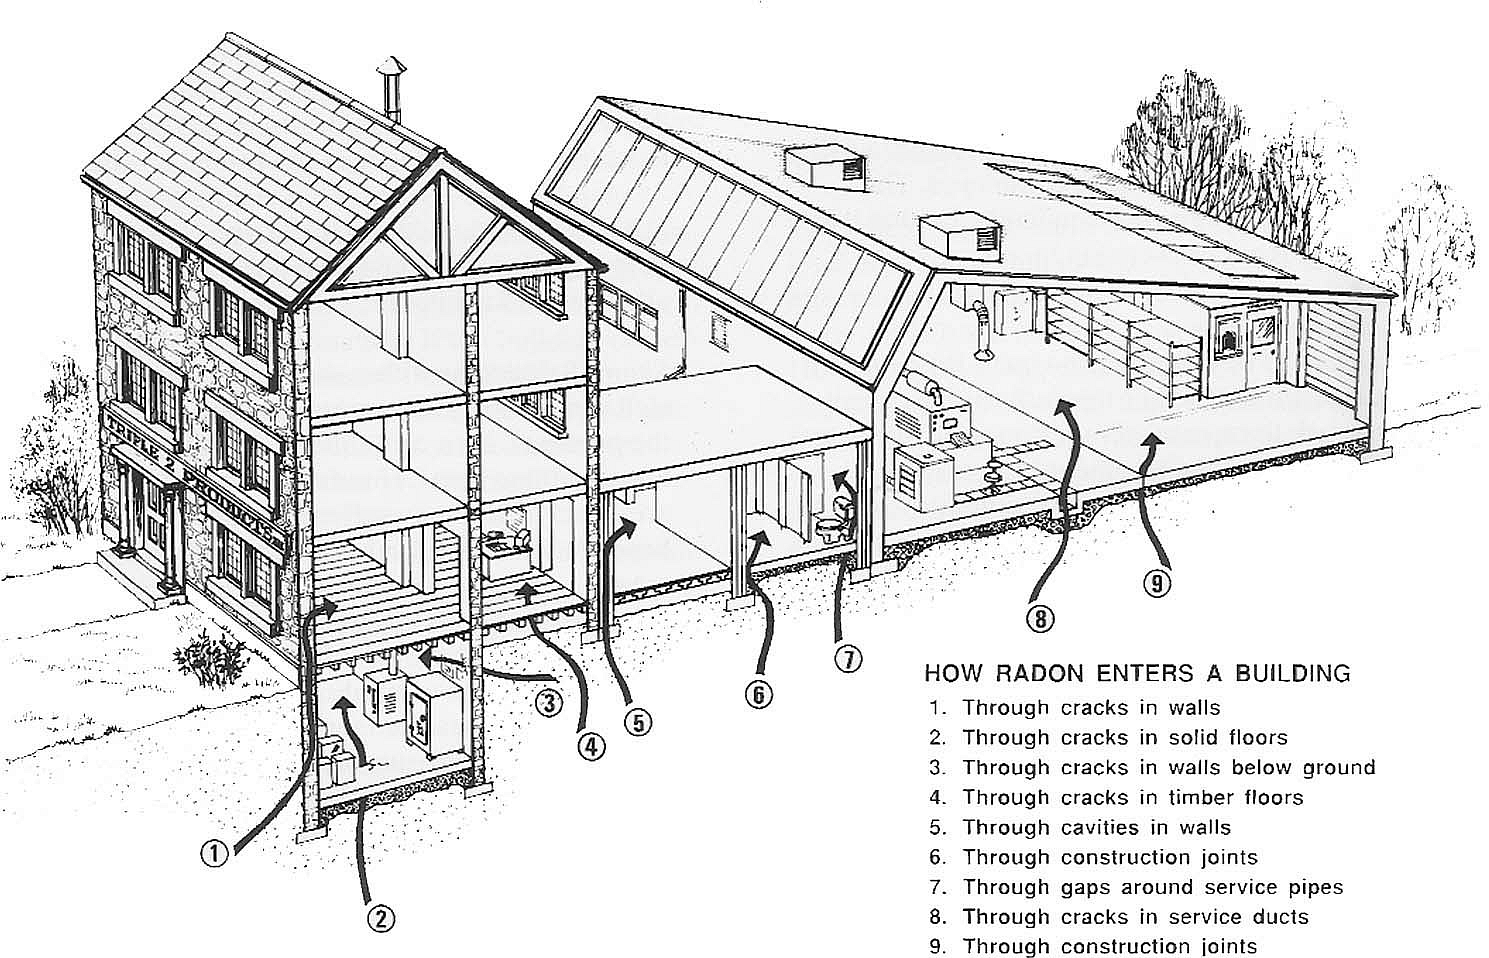 The Radon Specialist, Greensboro, Radon Entry Diagram Workplace